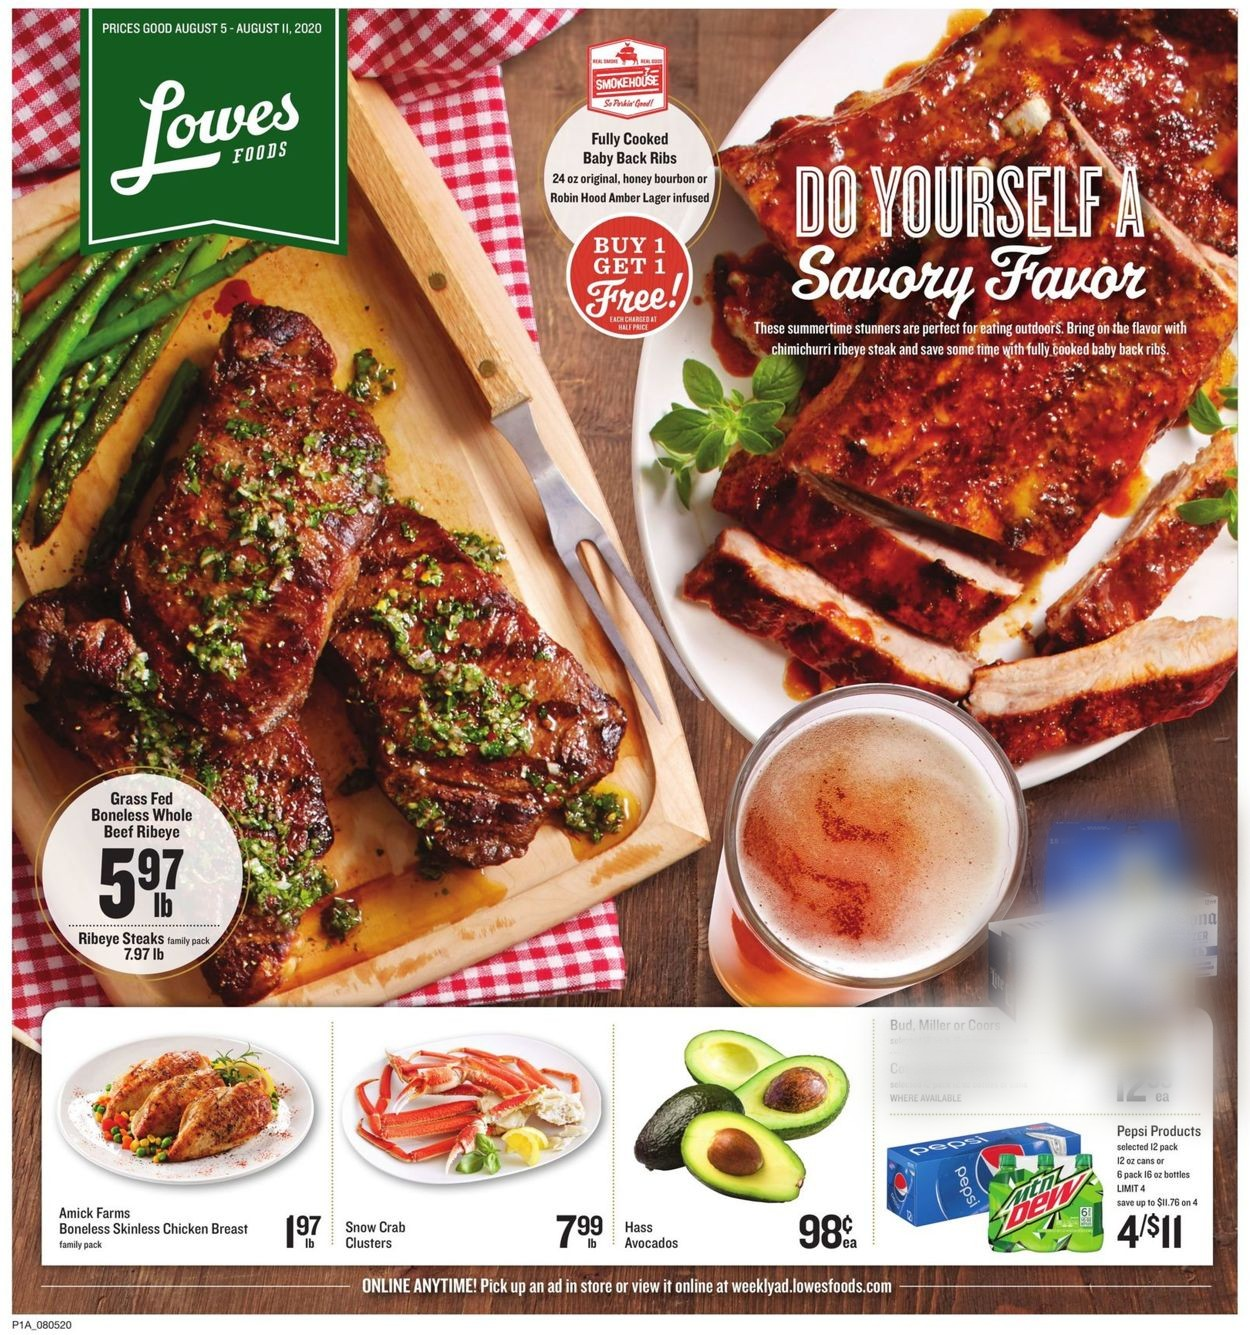 Lowes Foods Christmas Dinners 2020 Lowes Foods Current weekly ad 08/05   08/11/2020   frequent ads.com